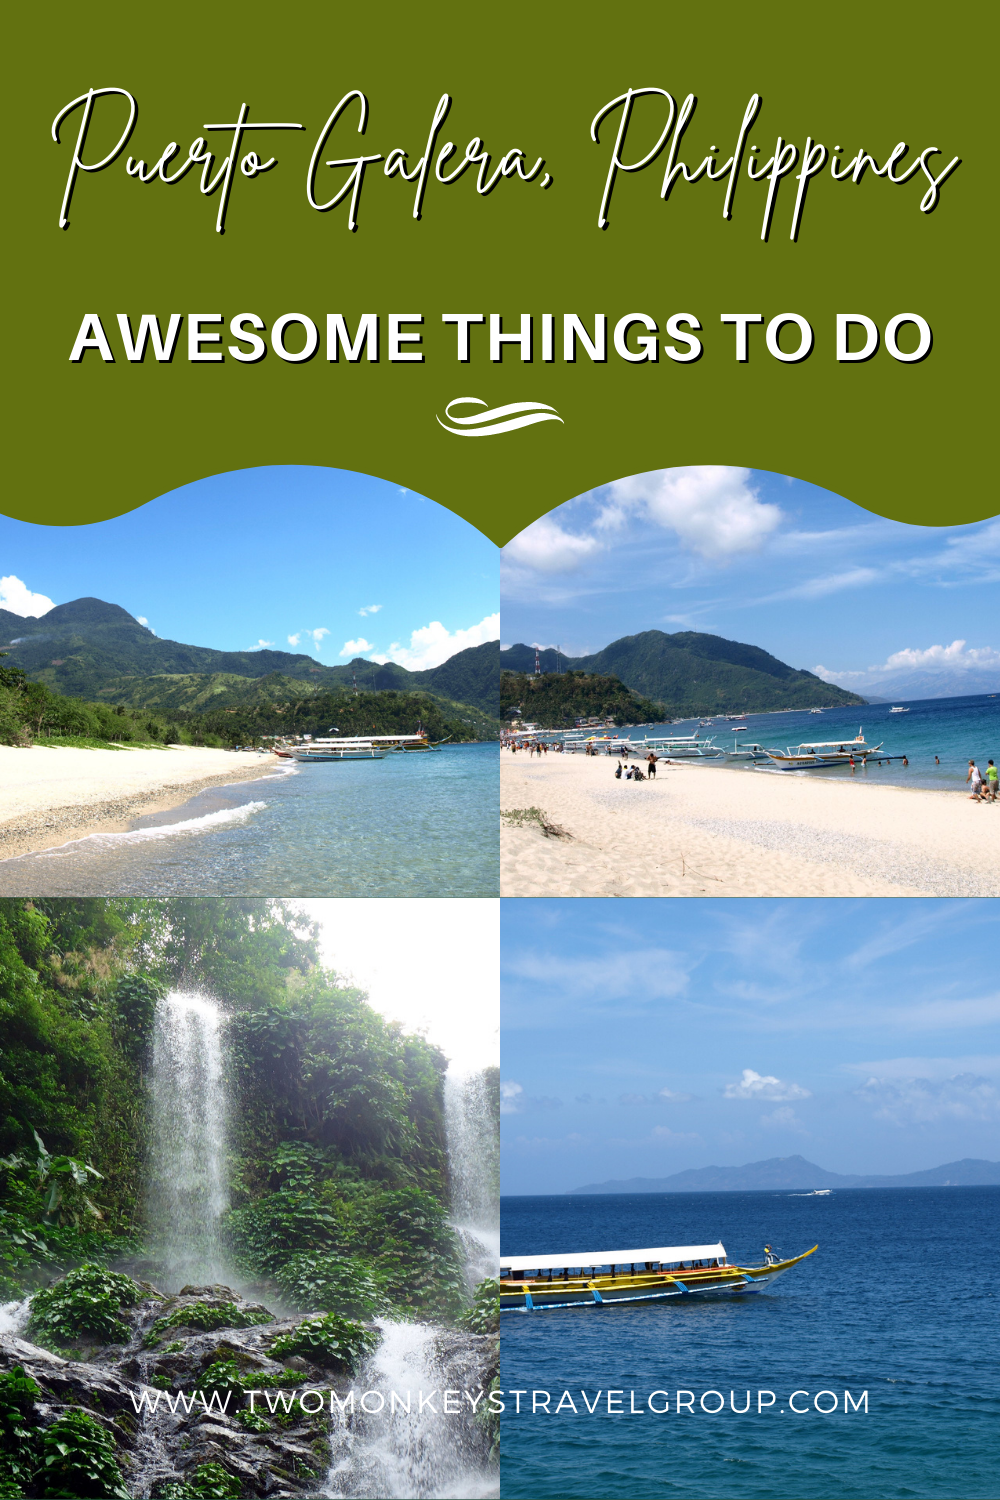 10 Awesome Things To Do in Puerto Galera, Philippines1